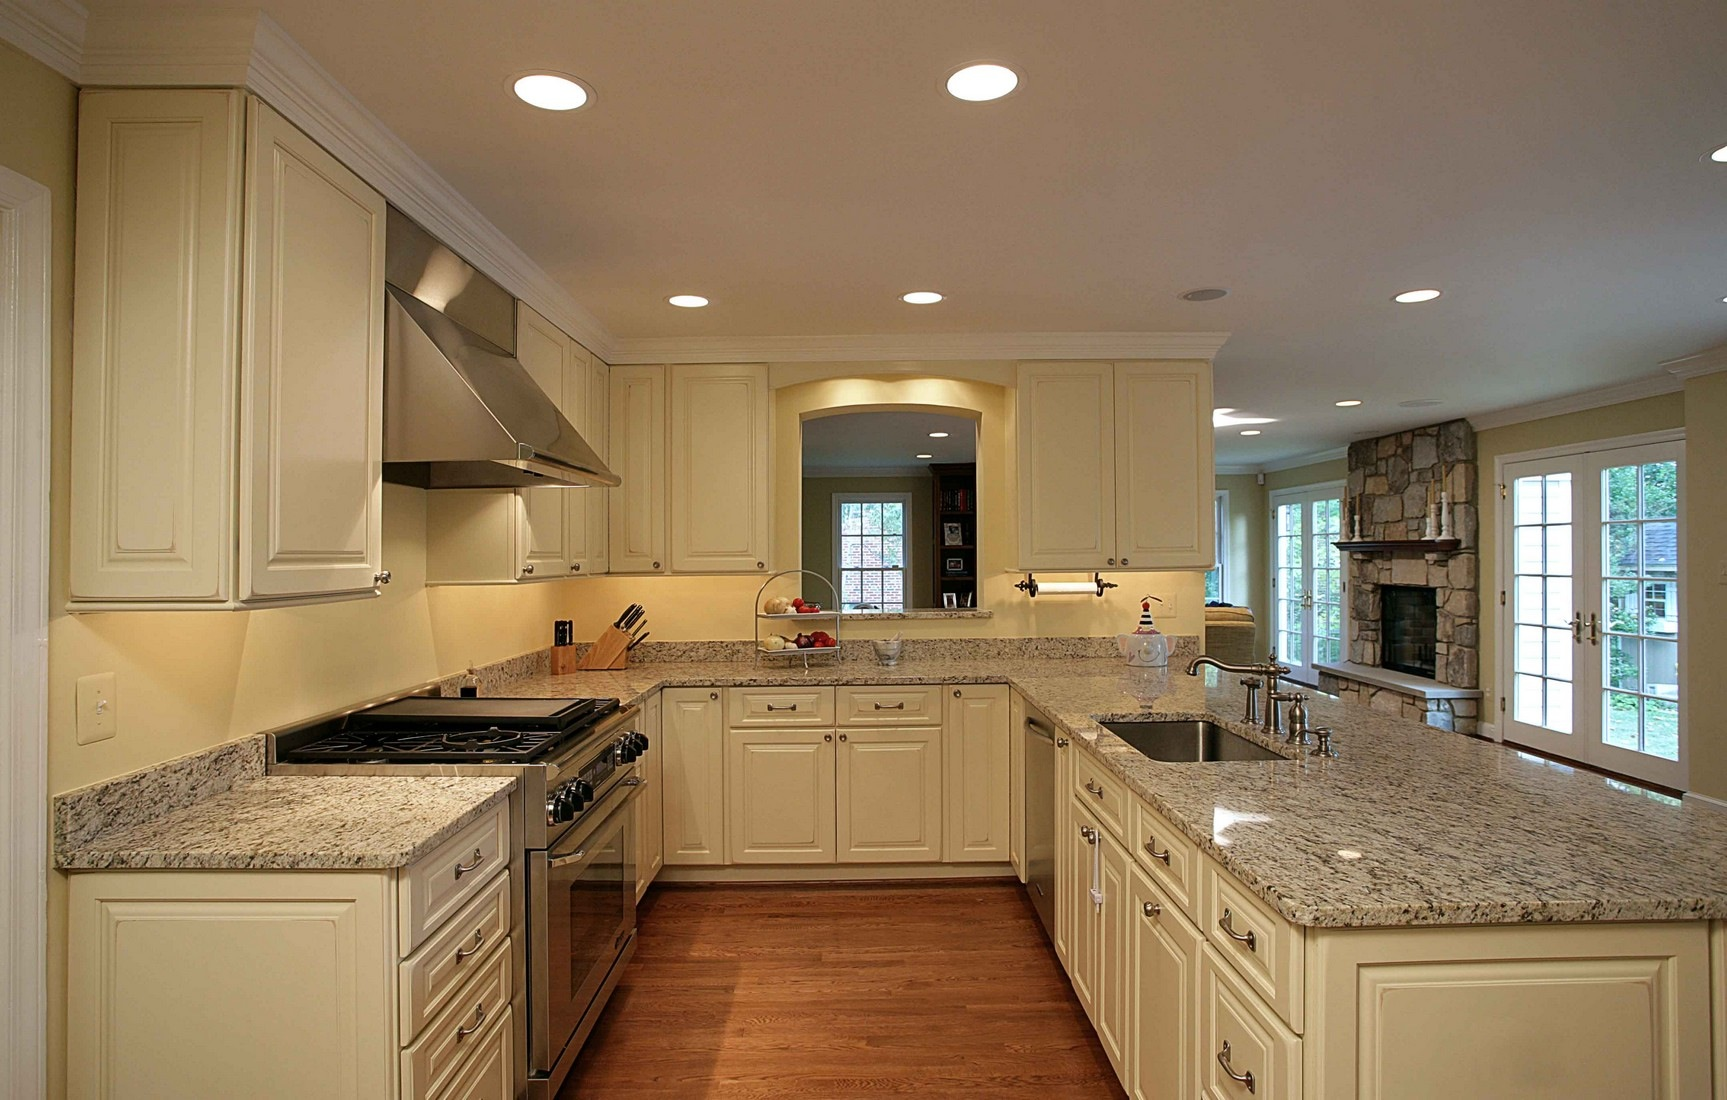 Kitchen Remodeling In Maryland Exterior Interior Best Chevy Chase Maryland Home Remodeling Inspiration Design